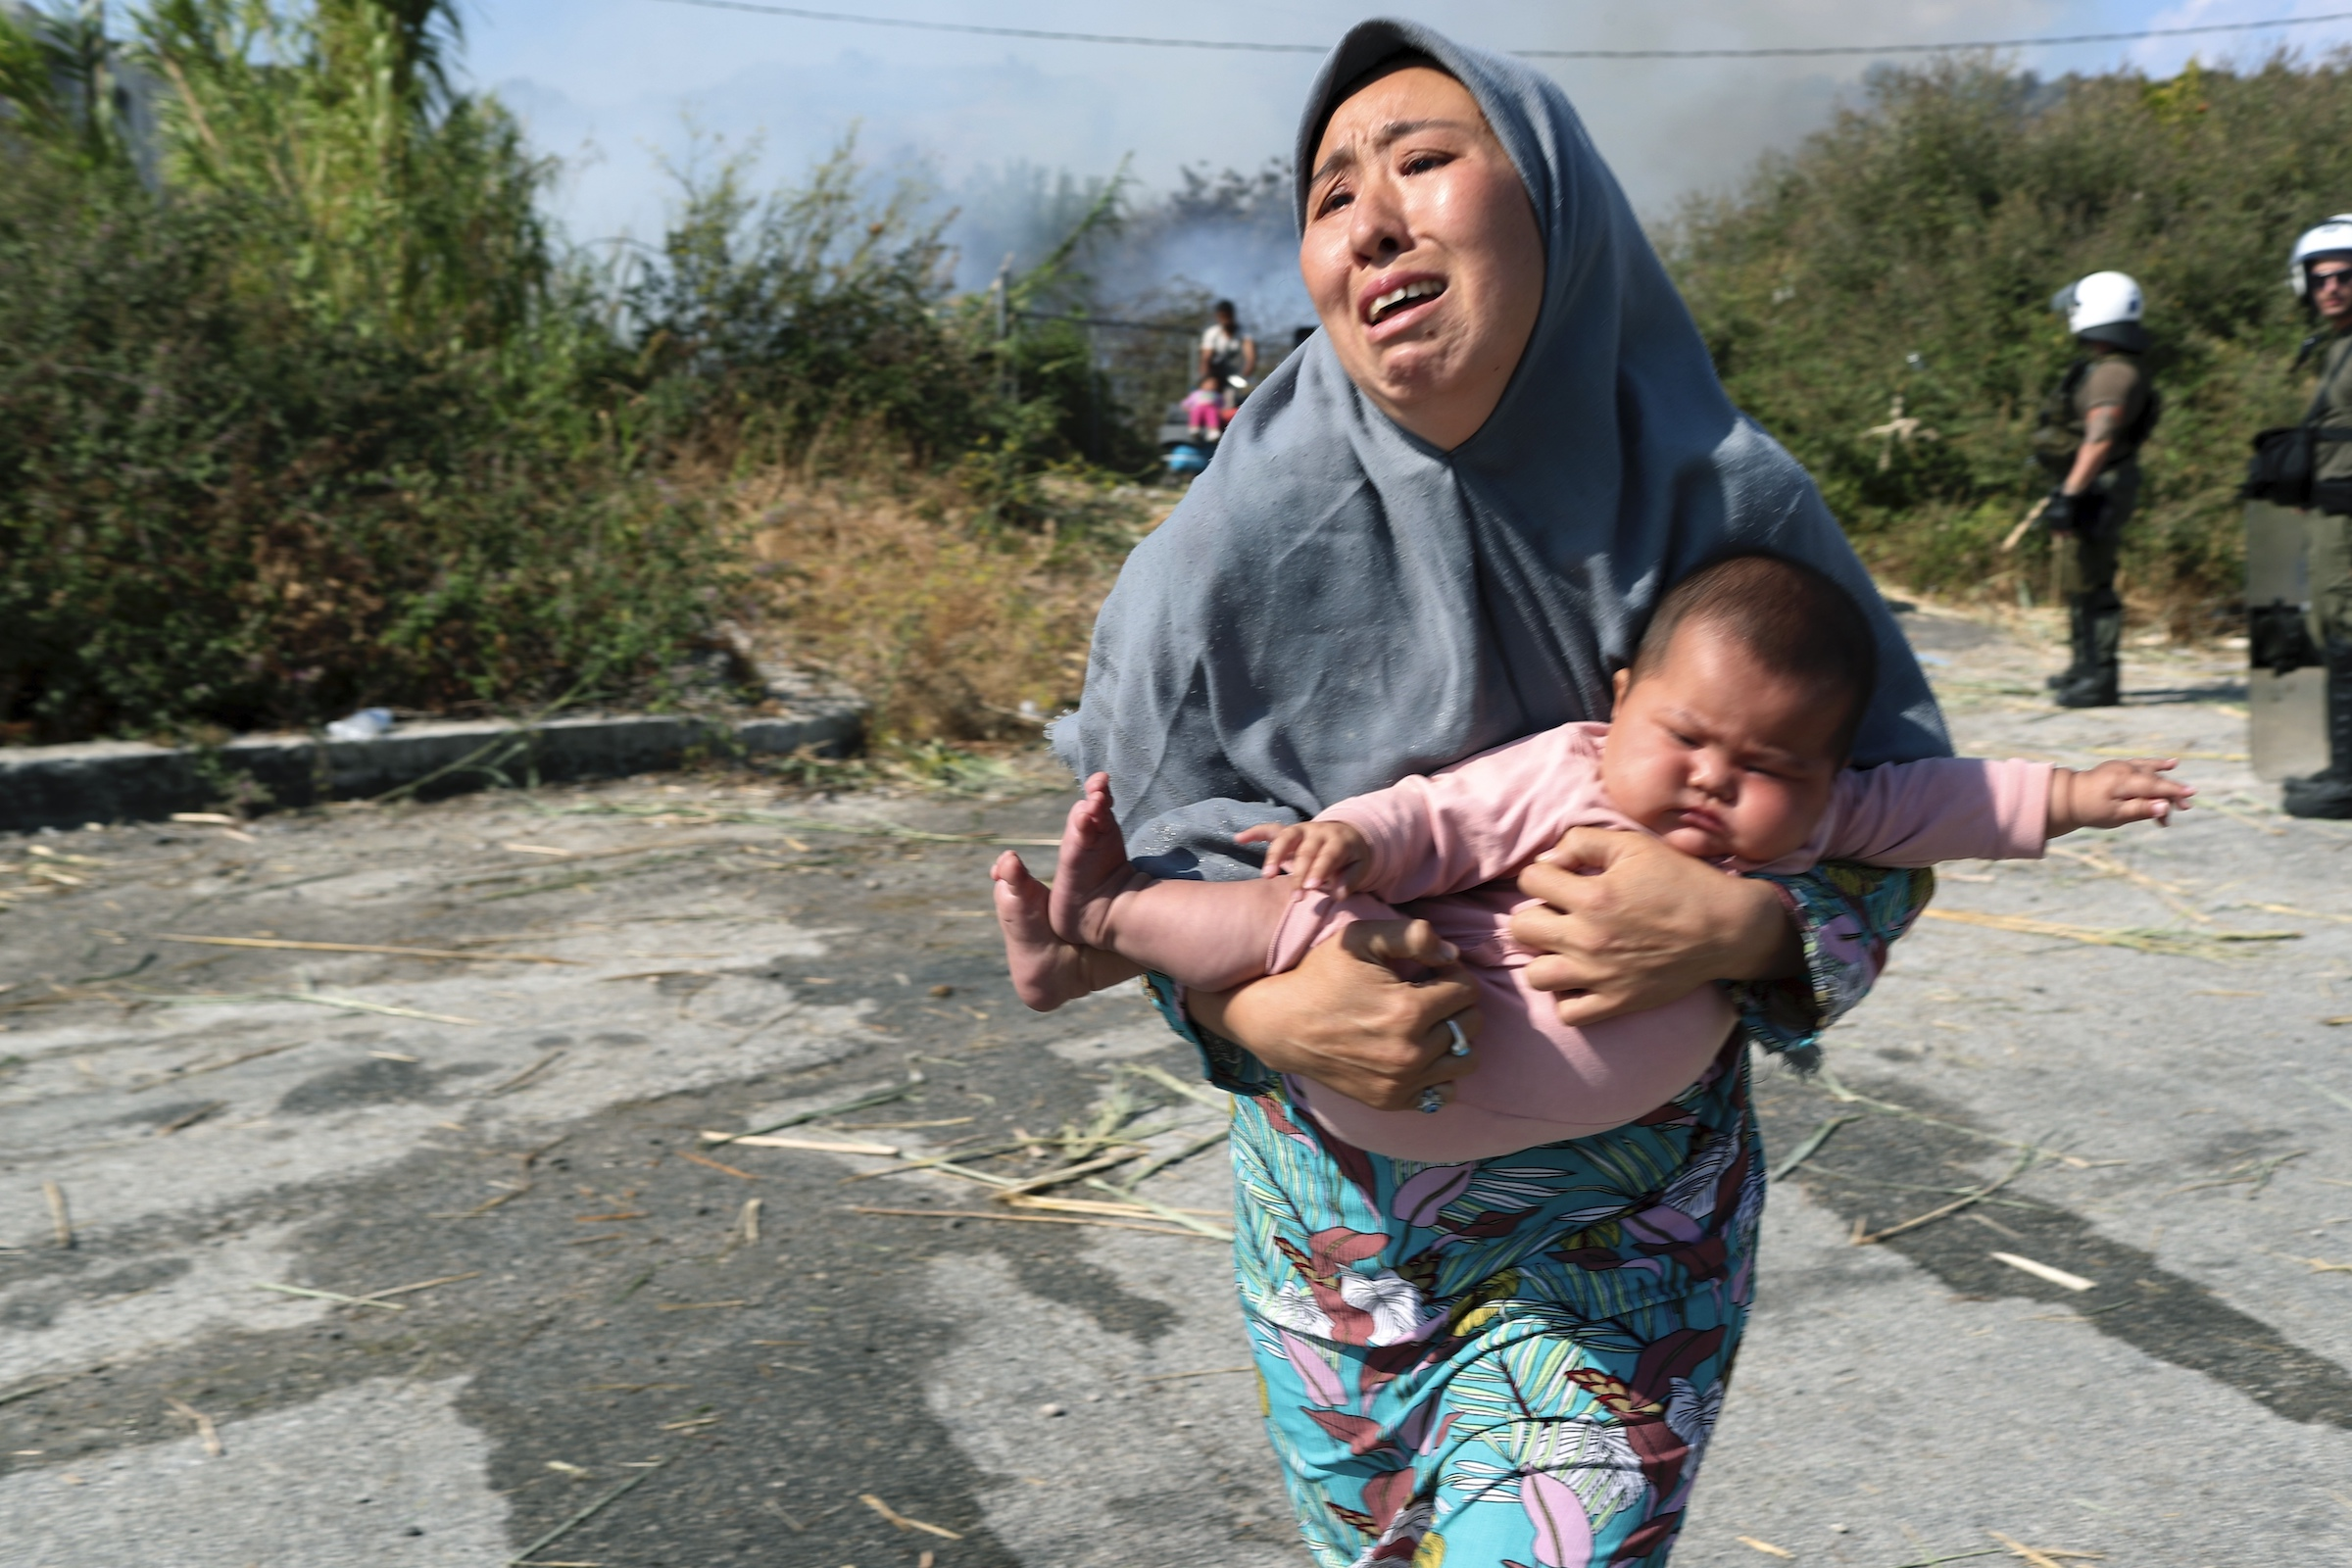 A migrant holds her baby as she runs to avoid a small fire in a field near Mytilene town, on the northeastern island of Lesbos, Greece, Sept. 12, 2020